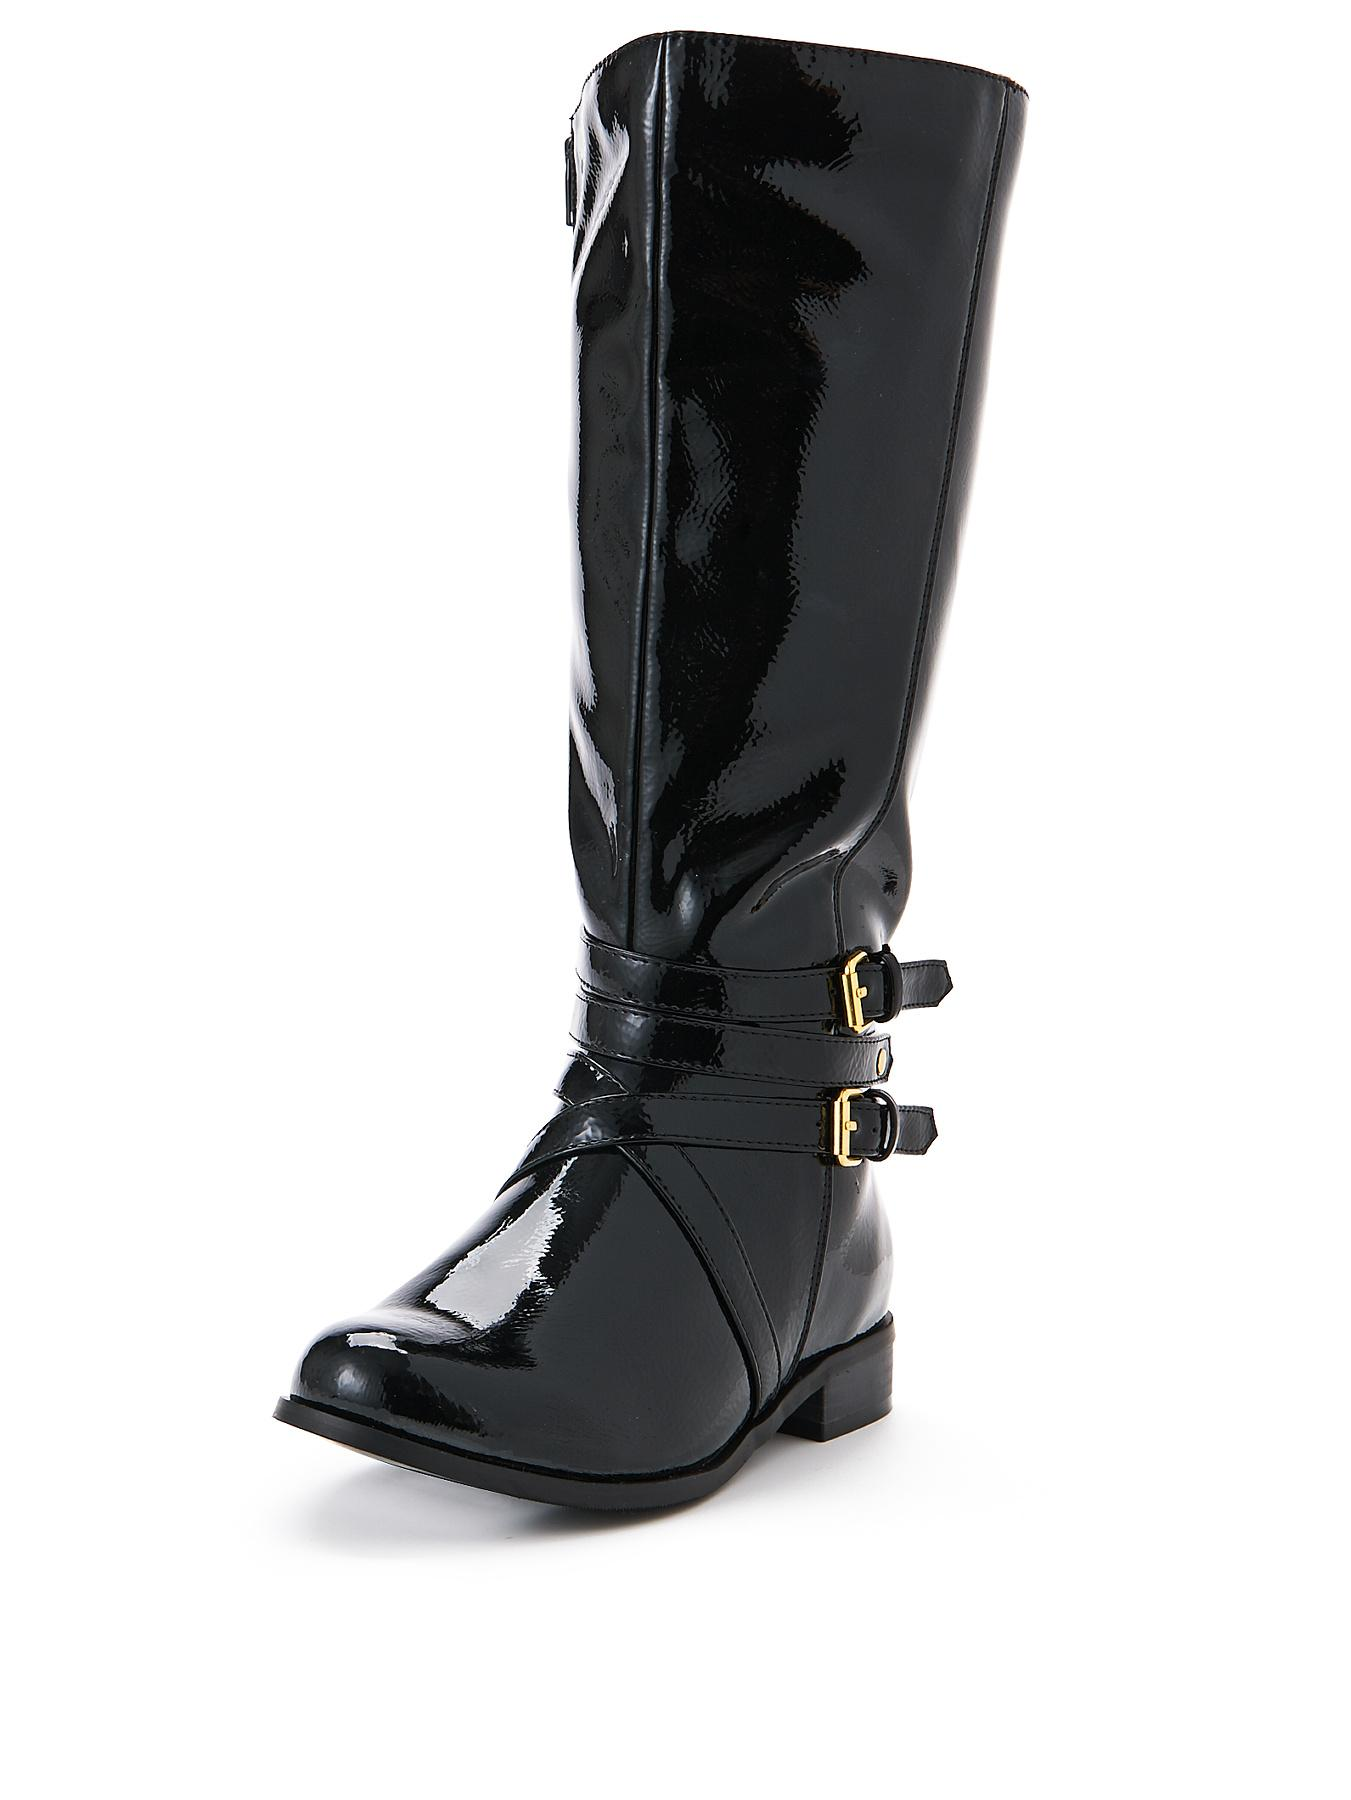 Shoe Box Adelaide Buckle Detail Extra Wide Fit Riding Boot